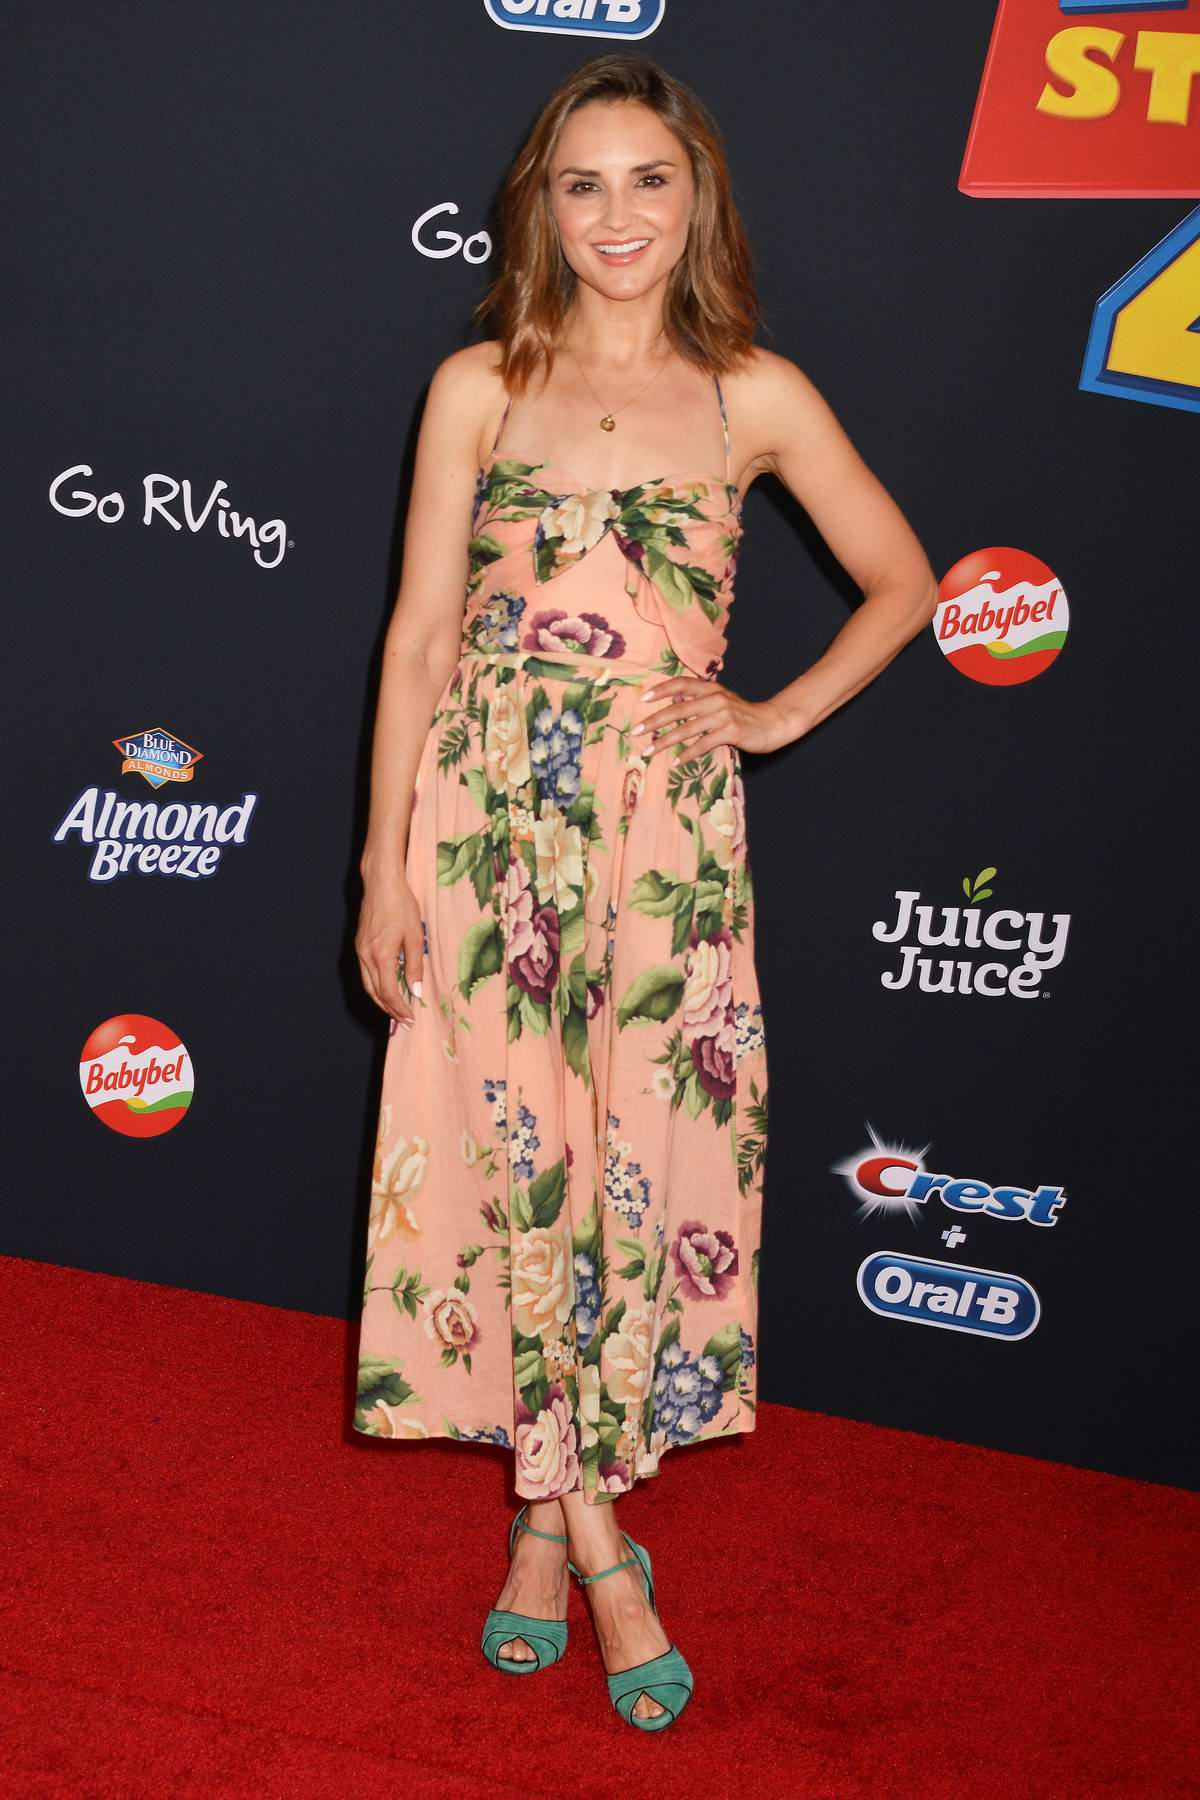 Rachael Leigh Cook attends the World Premiere of 'Toy Story 4' at the El Capitan Theater in Hollywood, California